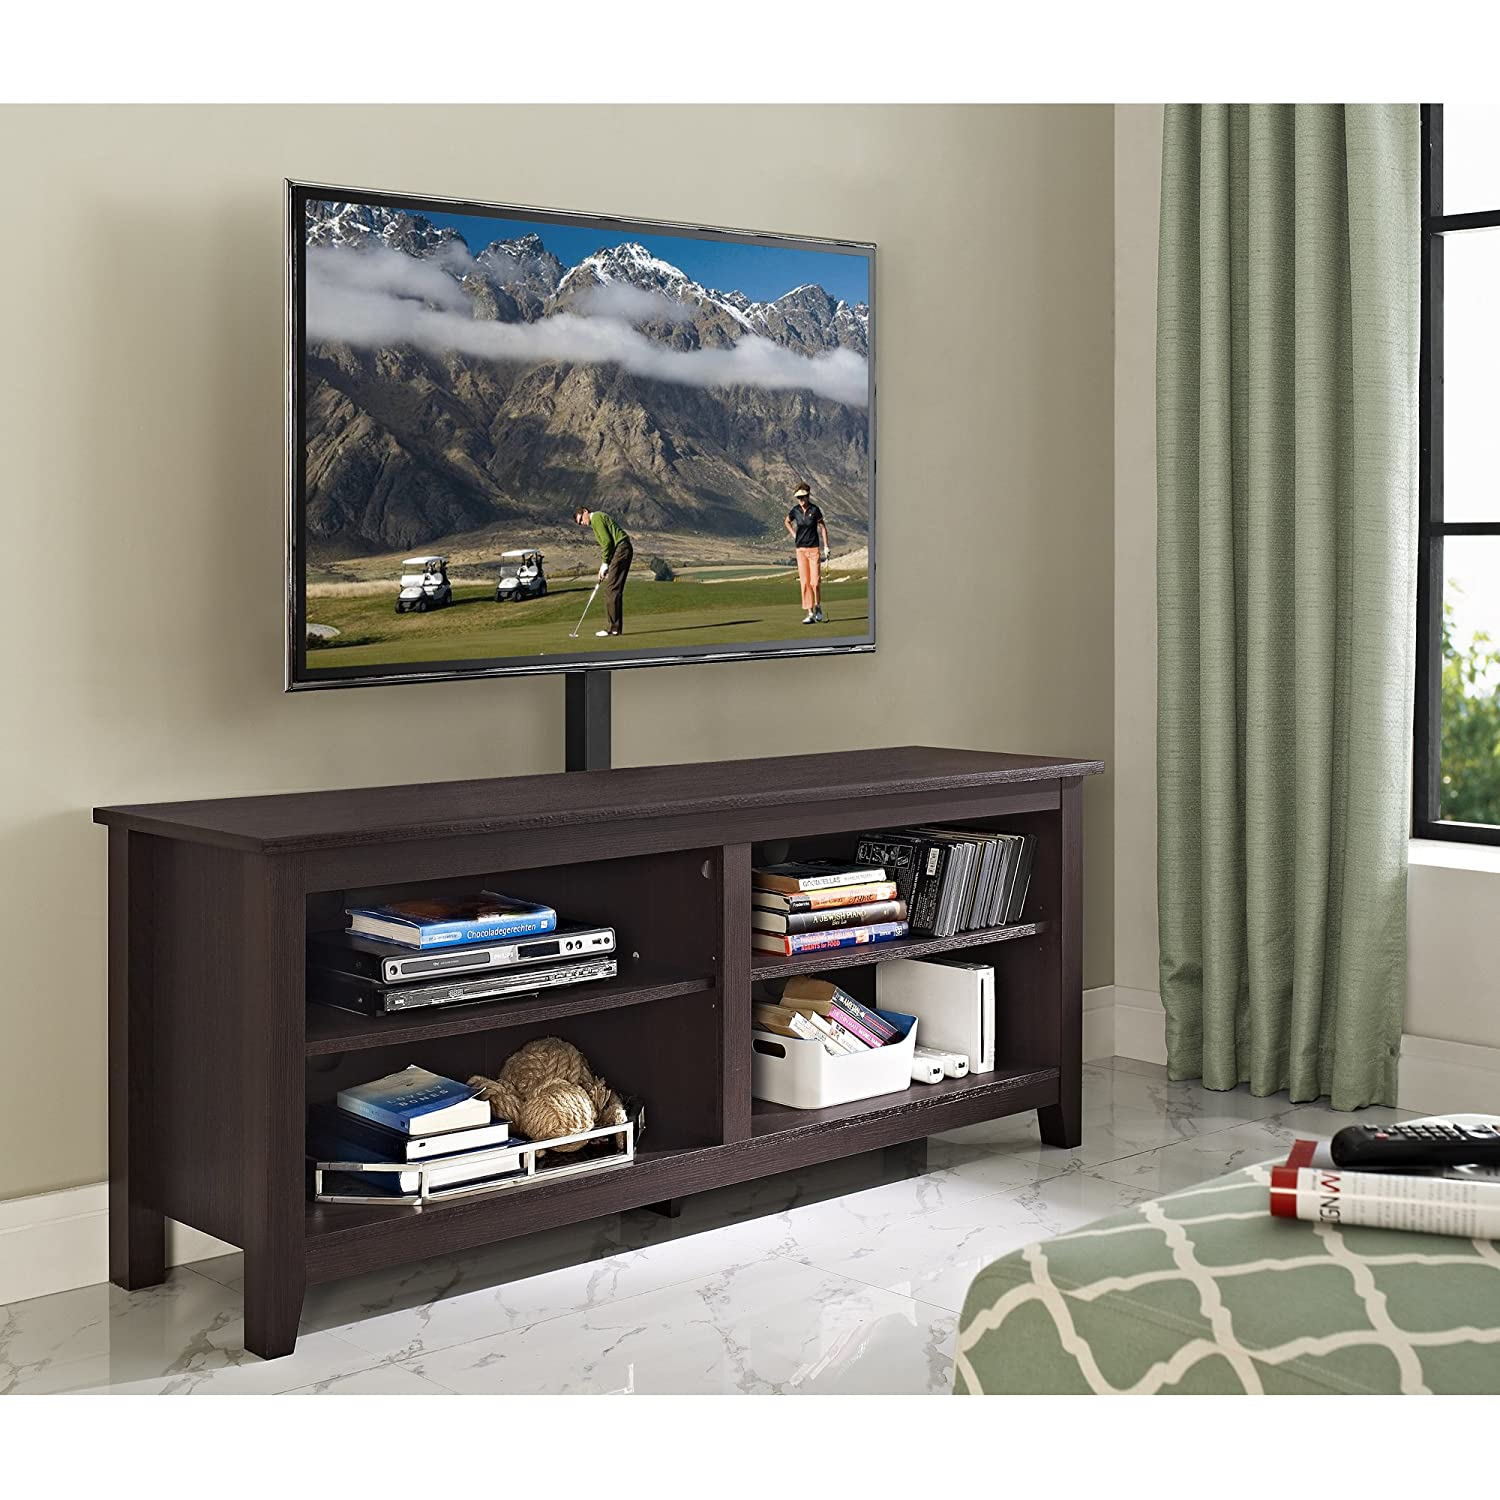 """WE Furniture Minimal Farmhouse Wood Universal Stand with Mount for TV's up to 64"""" Flat Screen Living Room Storage Shelves Entertainment Center, 58 Inch, Espresso"""